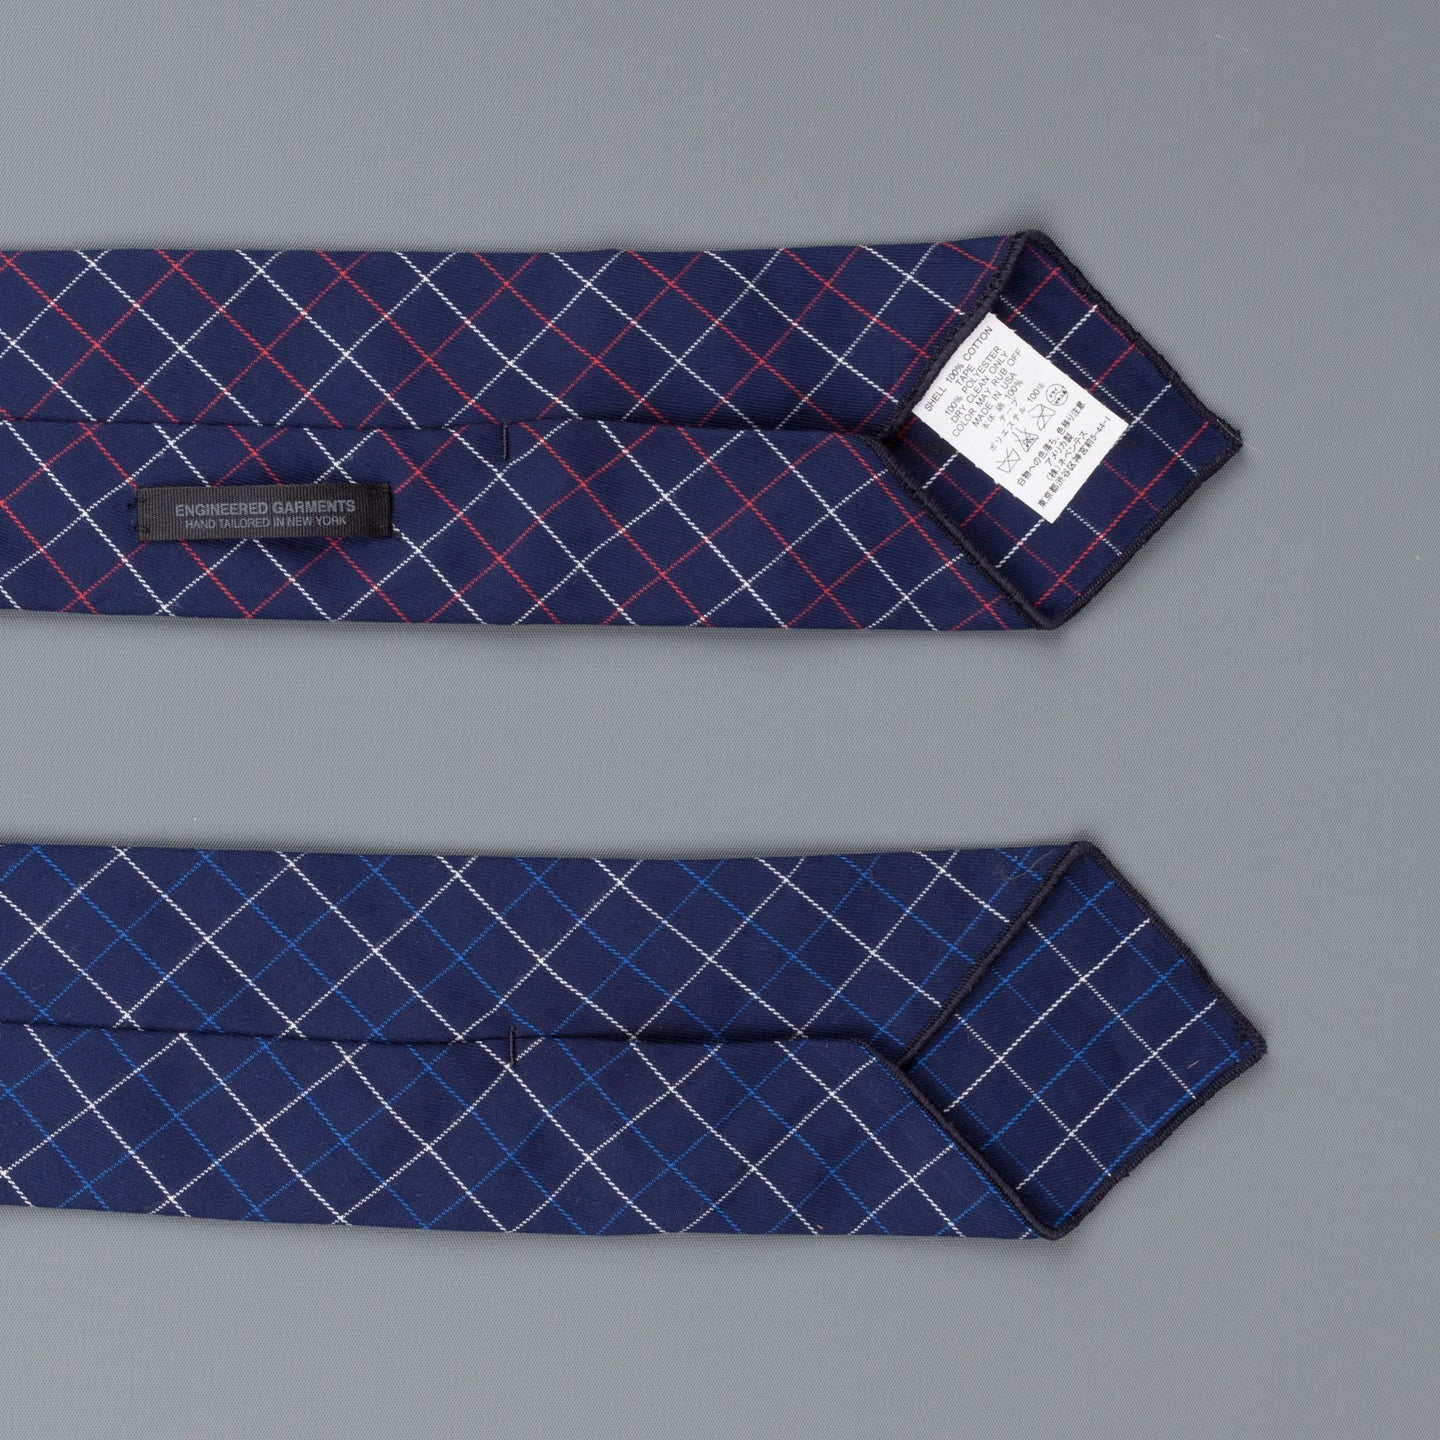 Engineered Garments Combo Neck tie navy red tattersall